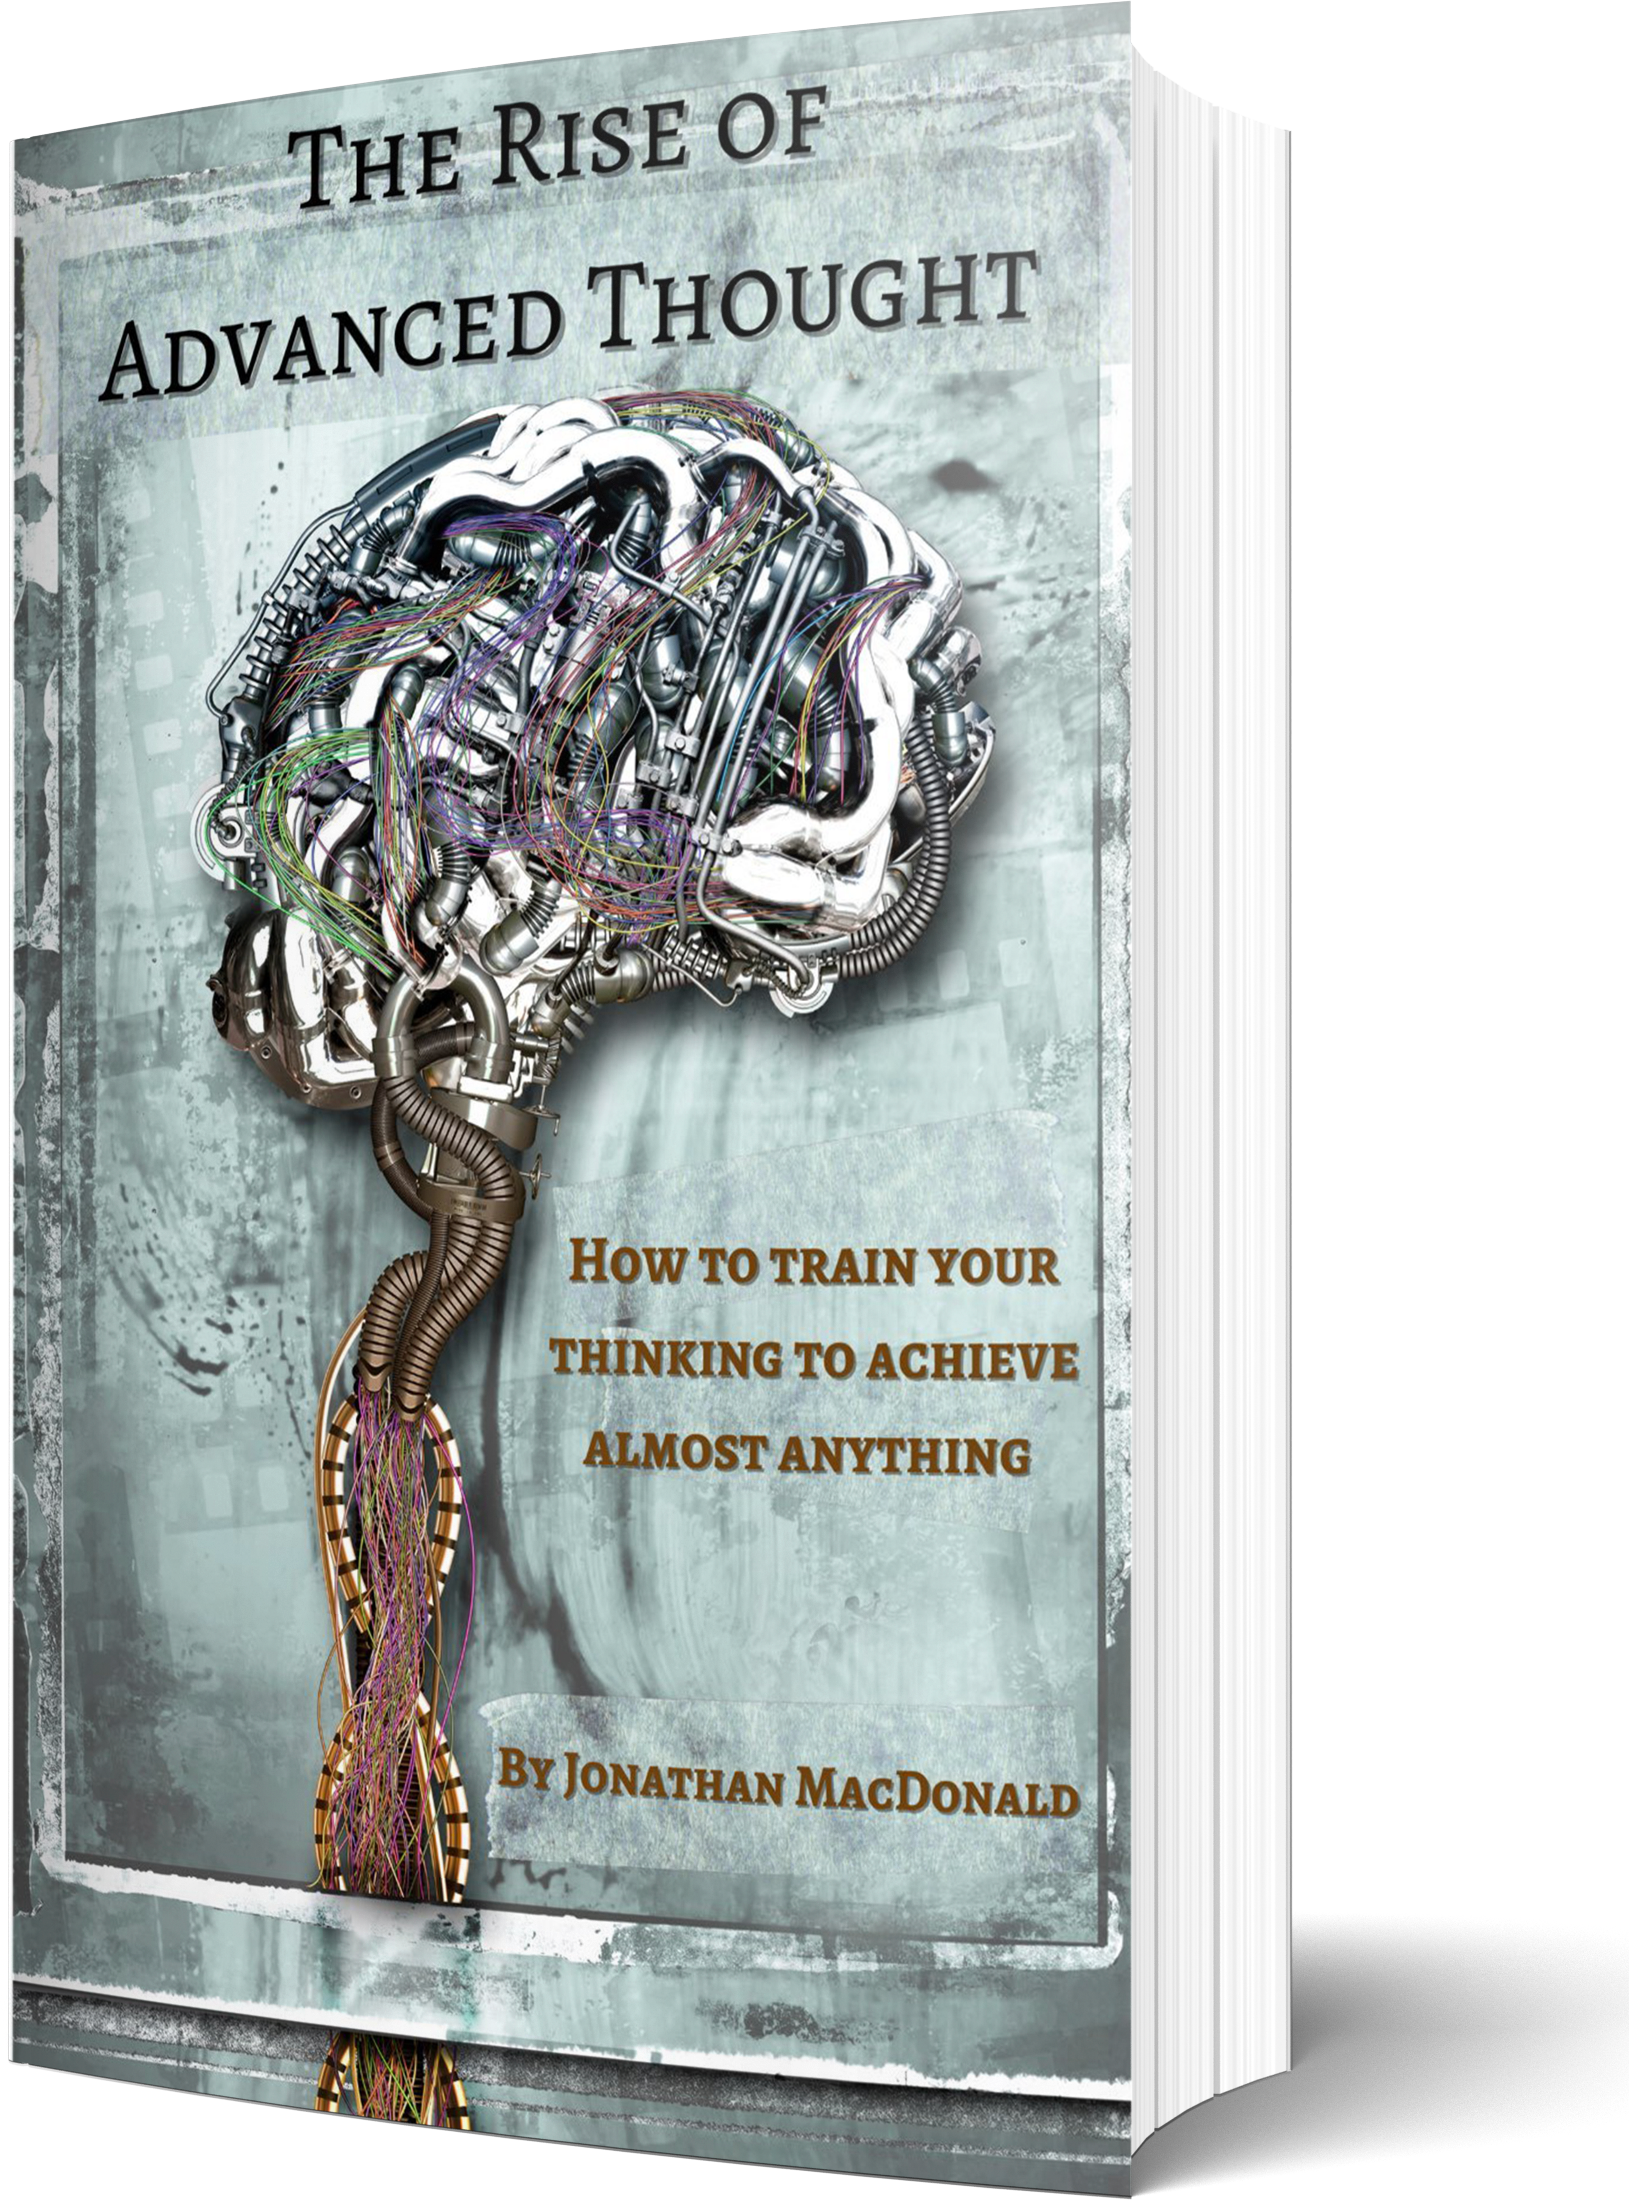 The Rise Of Advanced Thought by Jonathan MacDonald